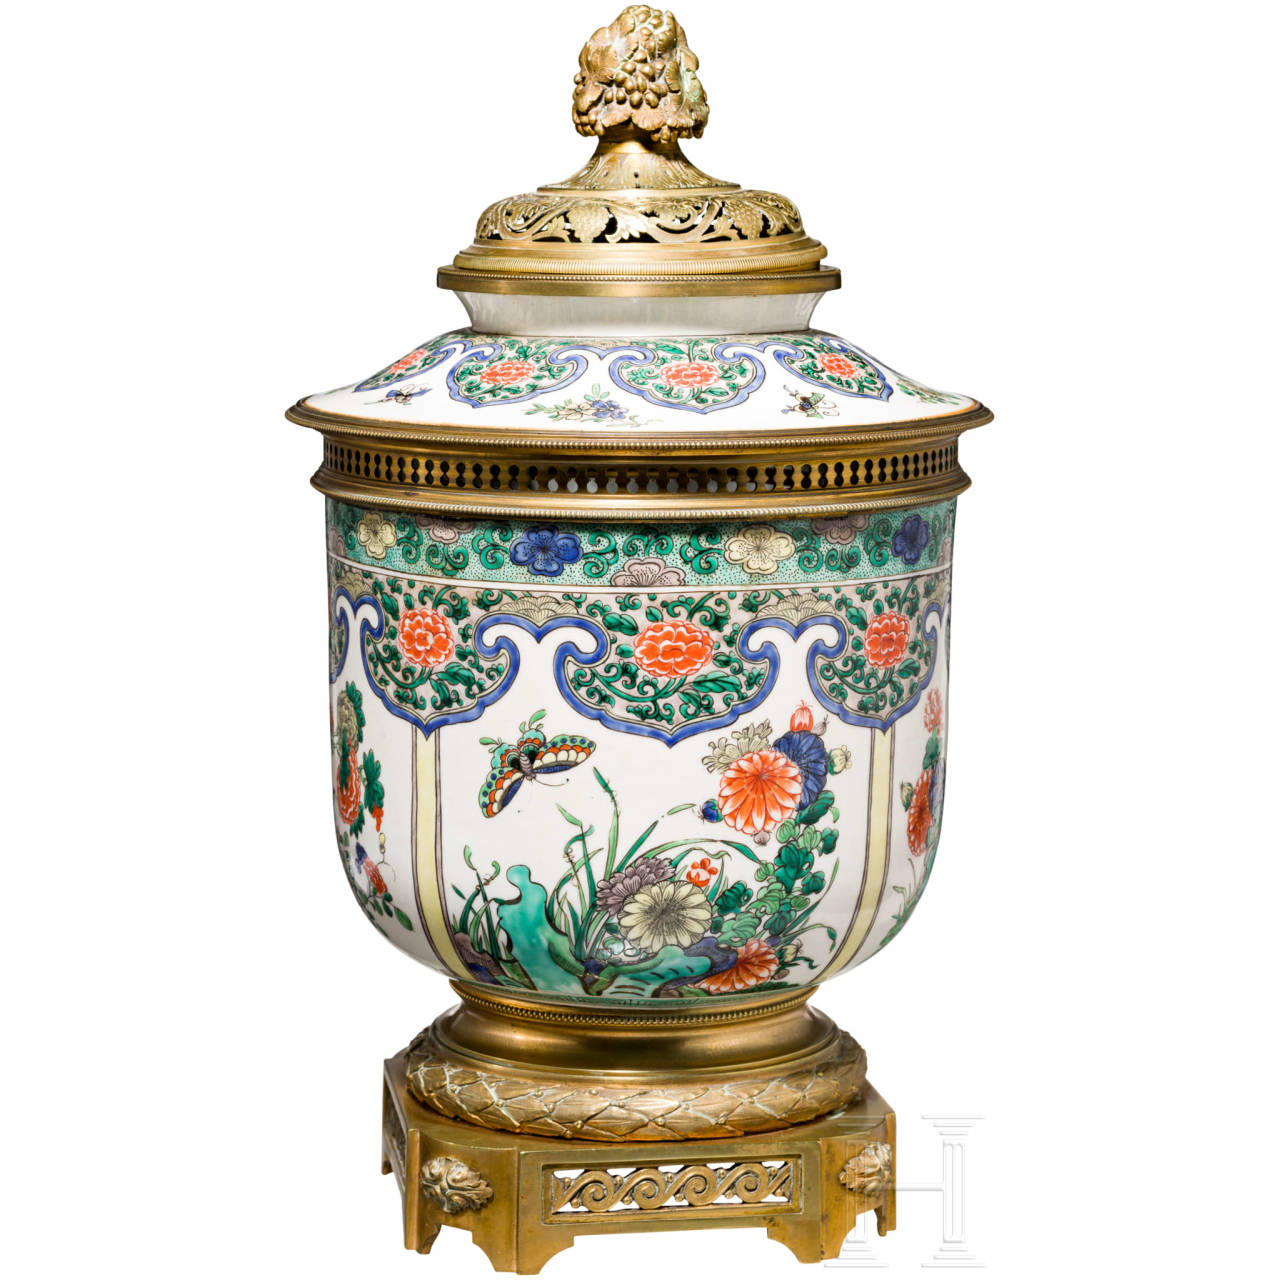 A fine Japanese/French lidded vase, 19th century